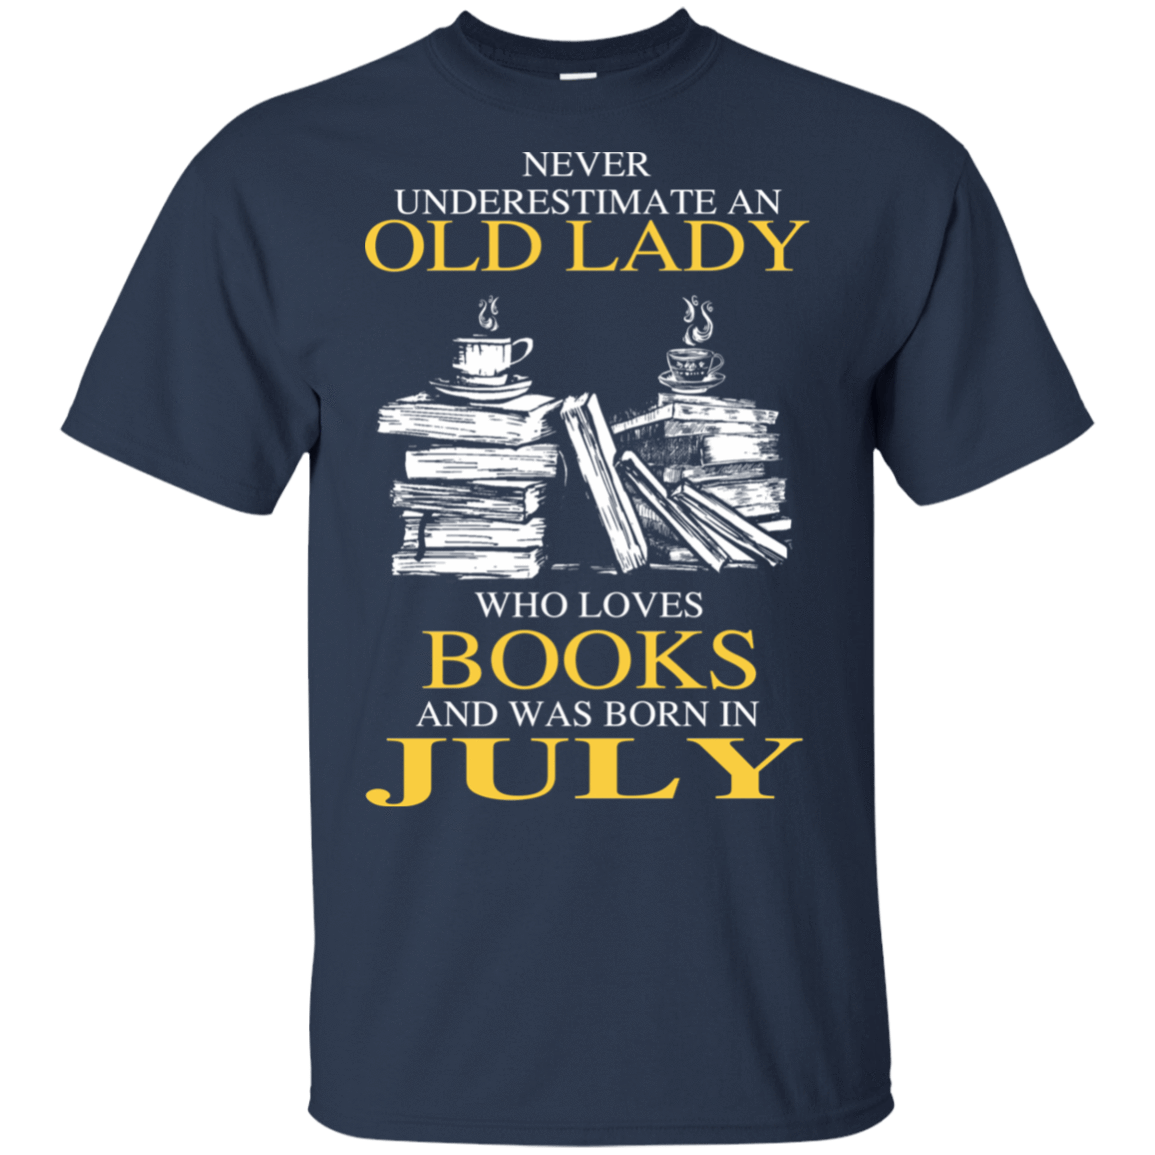 Never Underestimate An Old Lady Who Loves Books And Was Born In July T-Shirts, Hoodies 22-111-78318930-250 - Tee Ript